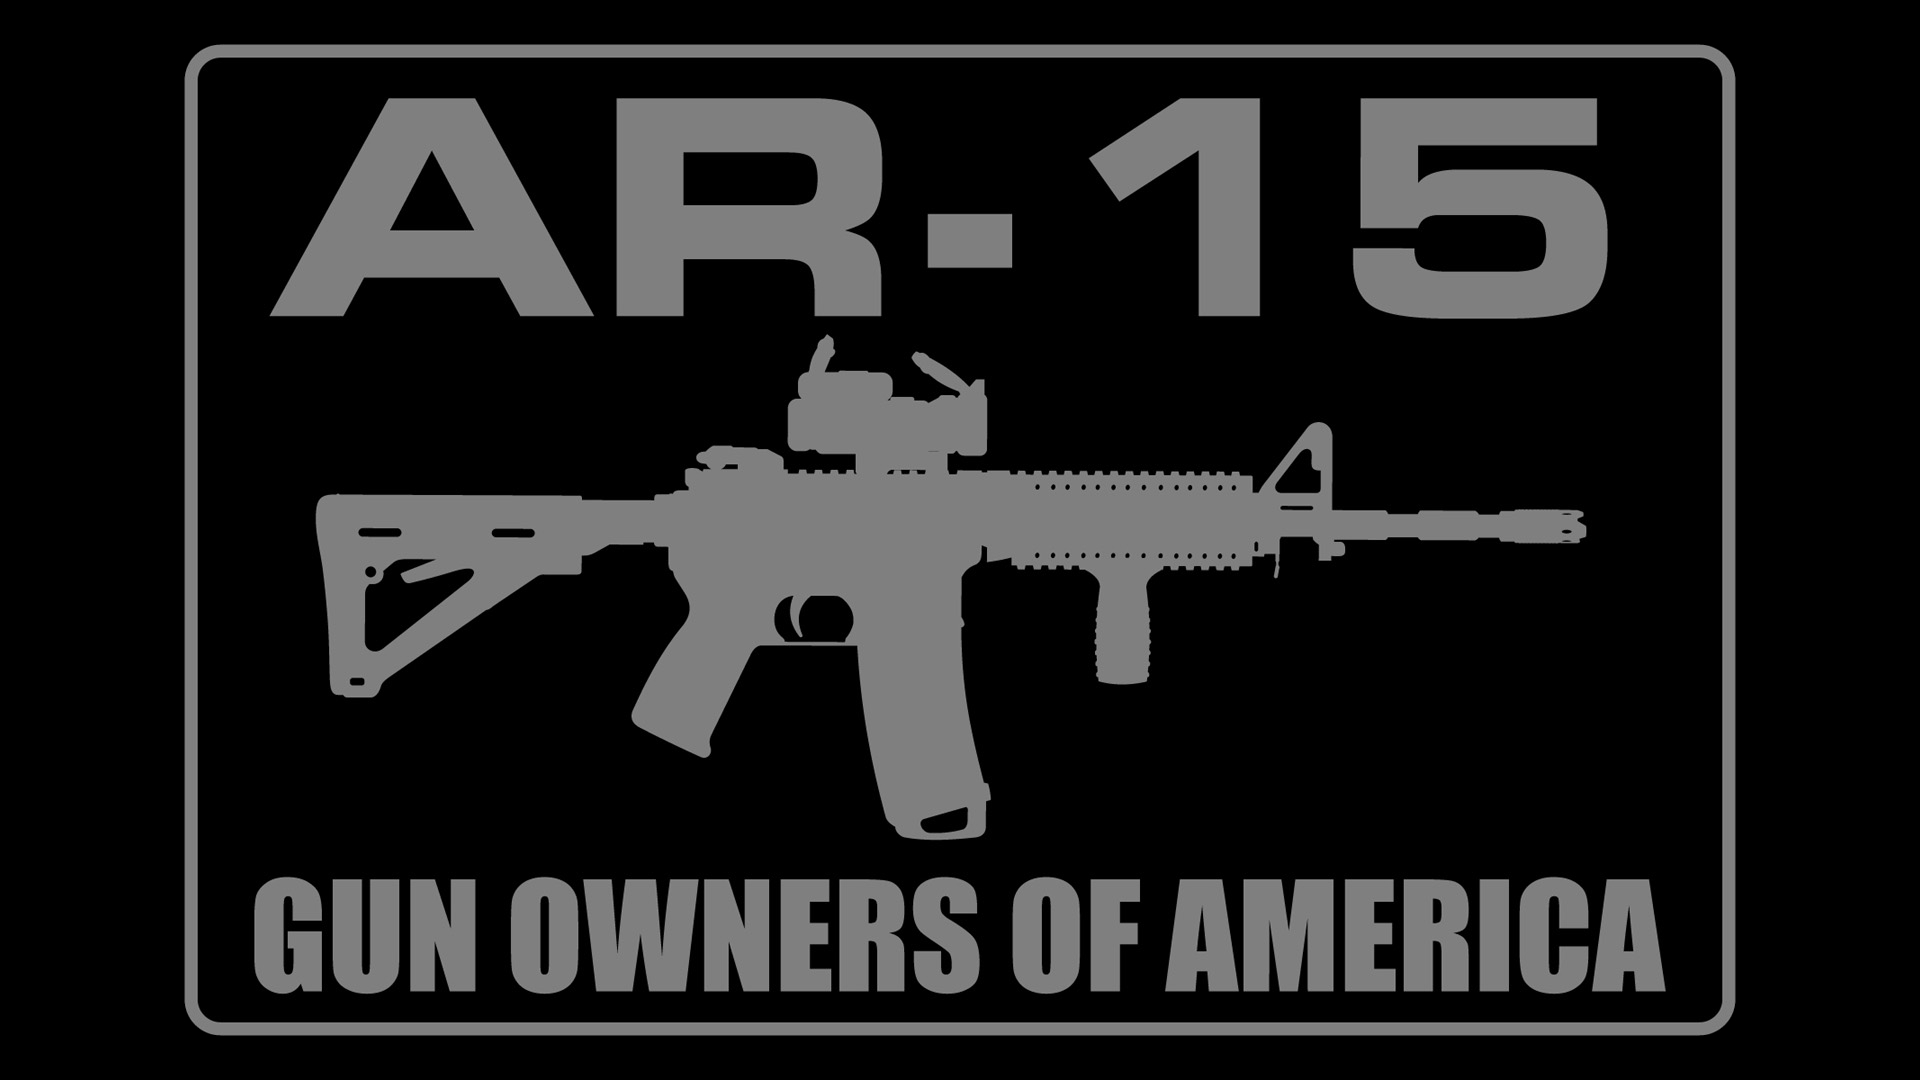 AR 15 Computer Wallpapers Desktop Backgrounds 1920x1080 ID526536 1920x1080